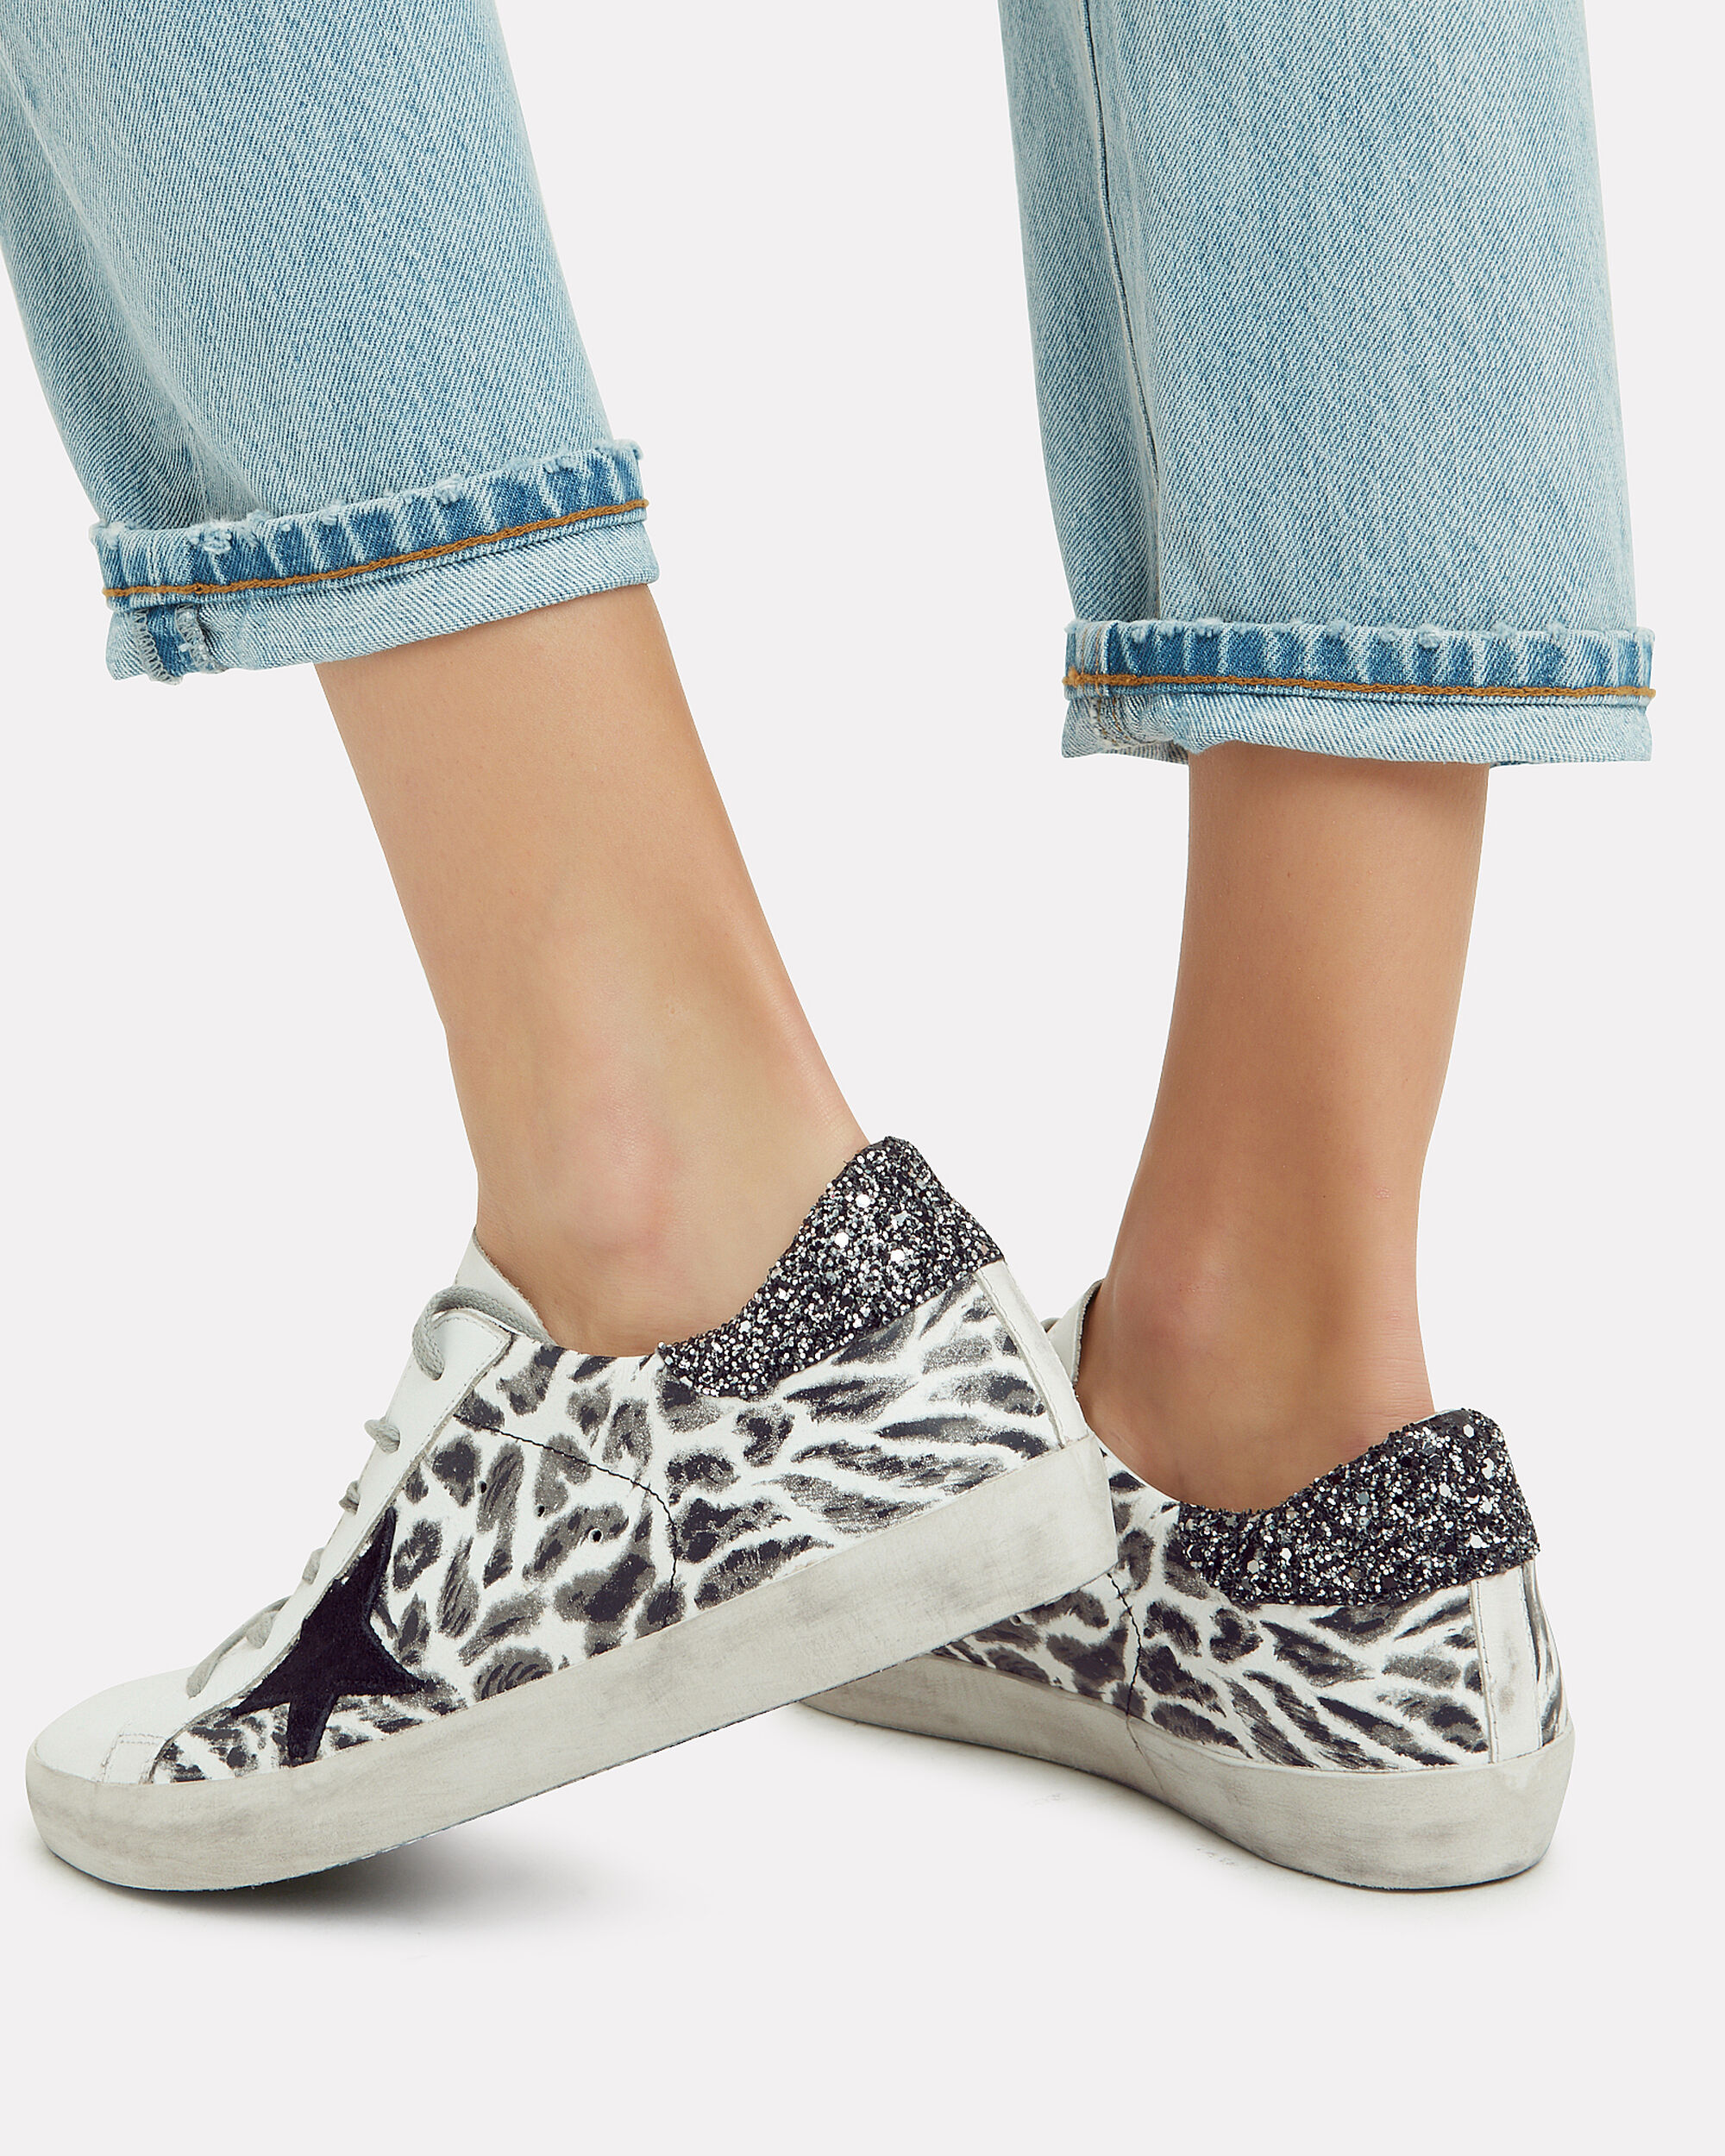 Superstar Leopard Print Low-Top Sneakers, WHITE/BLACK, hi-res